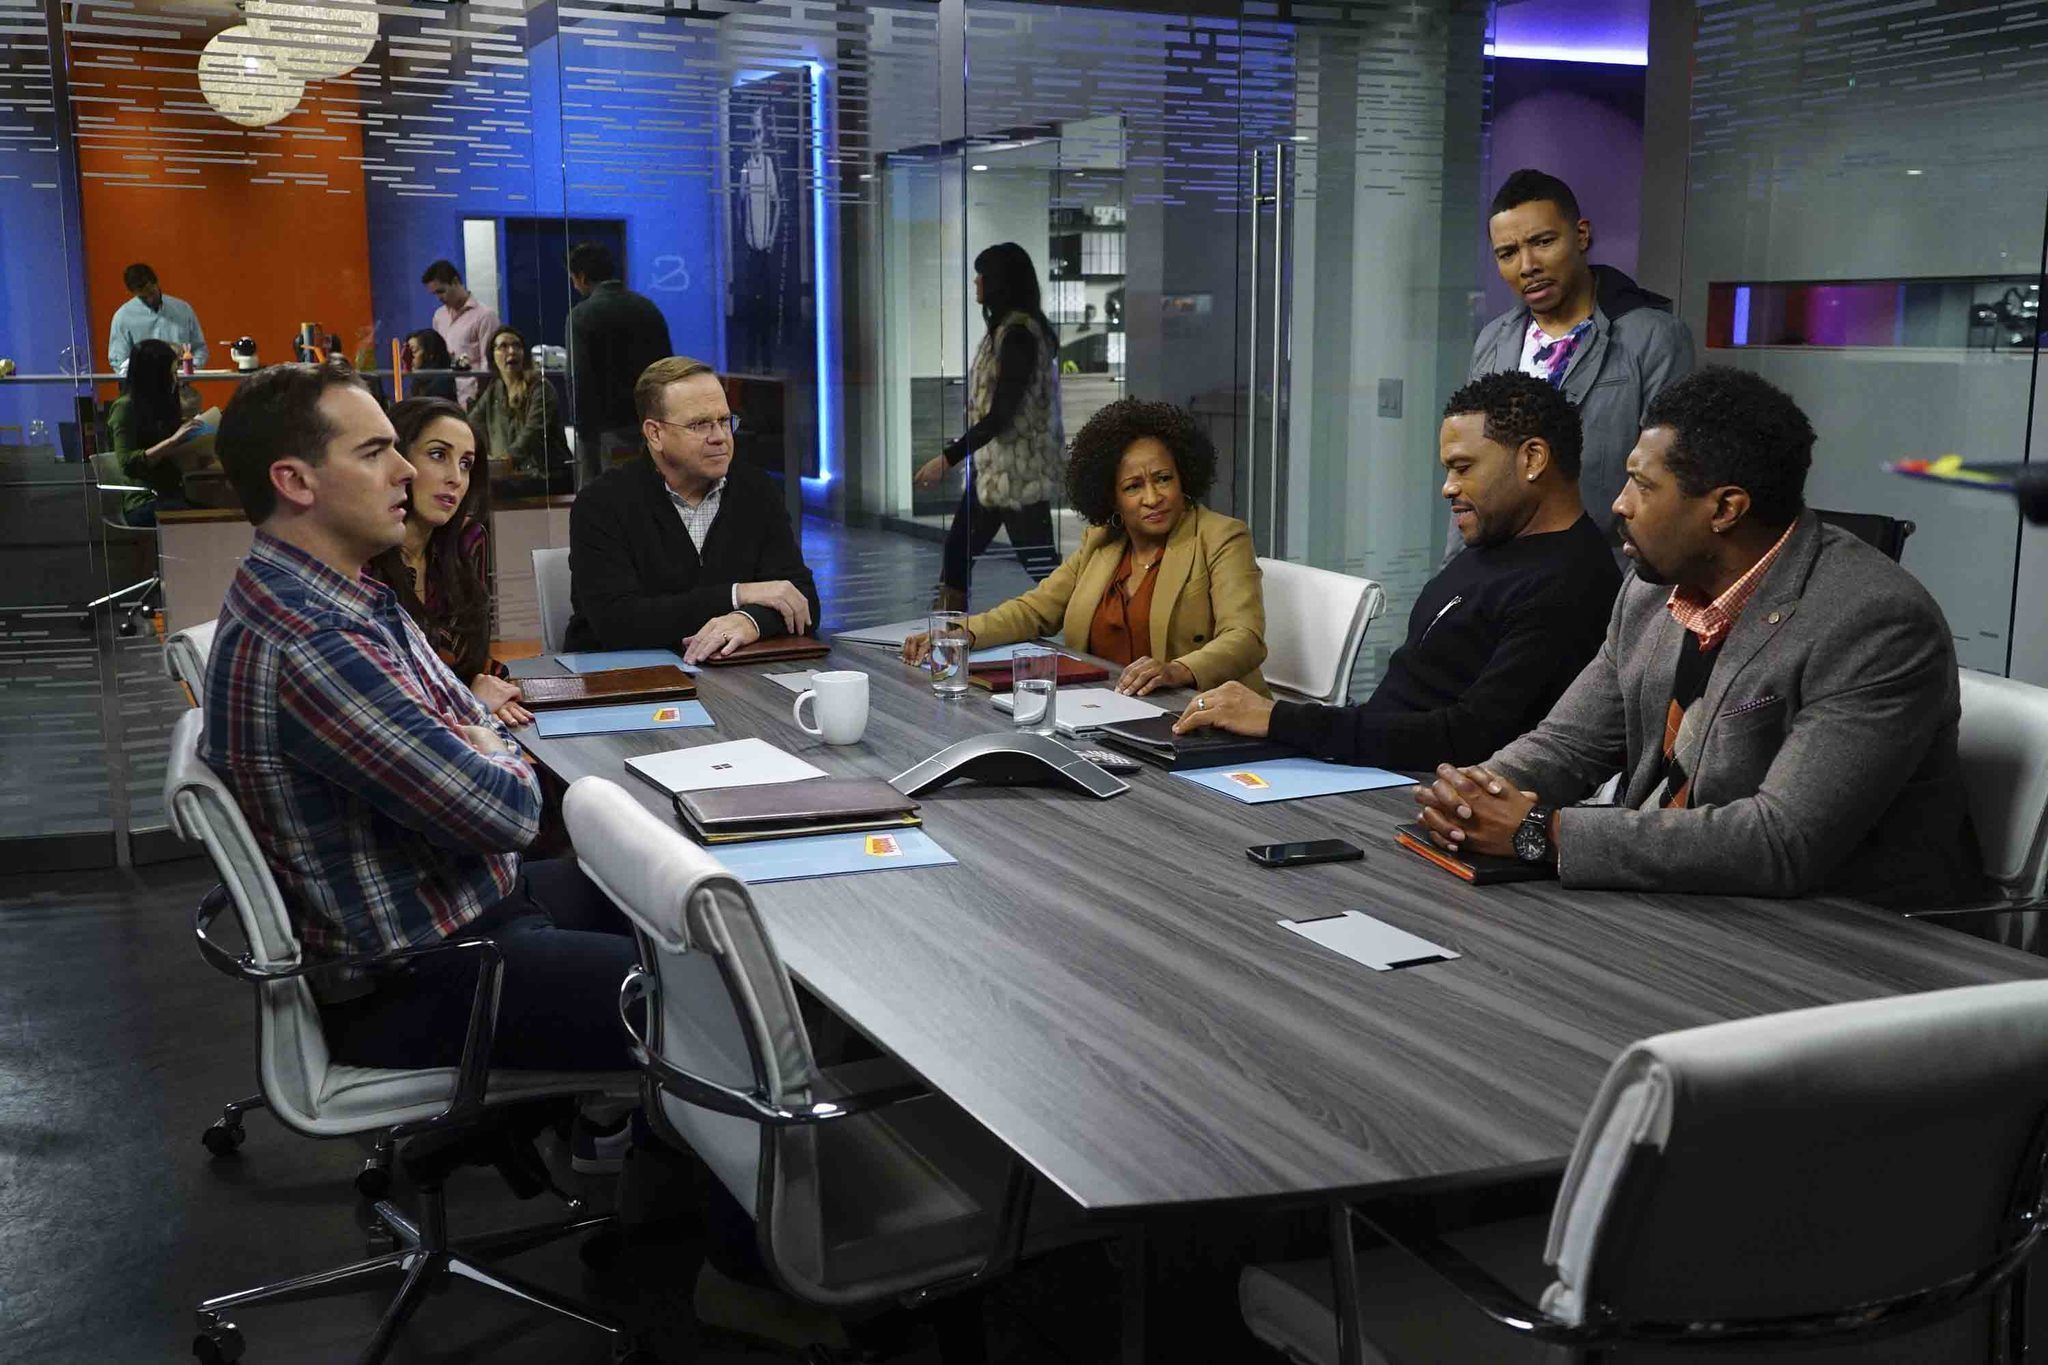 ABC's 'black-ish' reacts to Trump election with barbs, anger and a plea for understanding